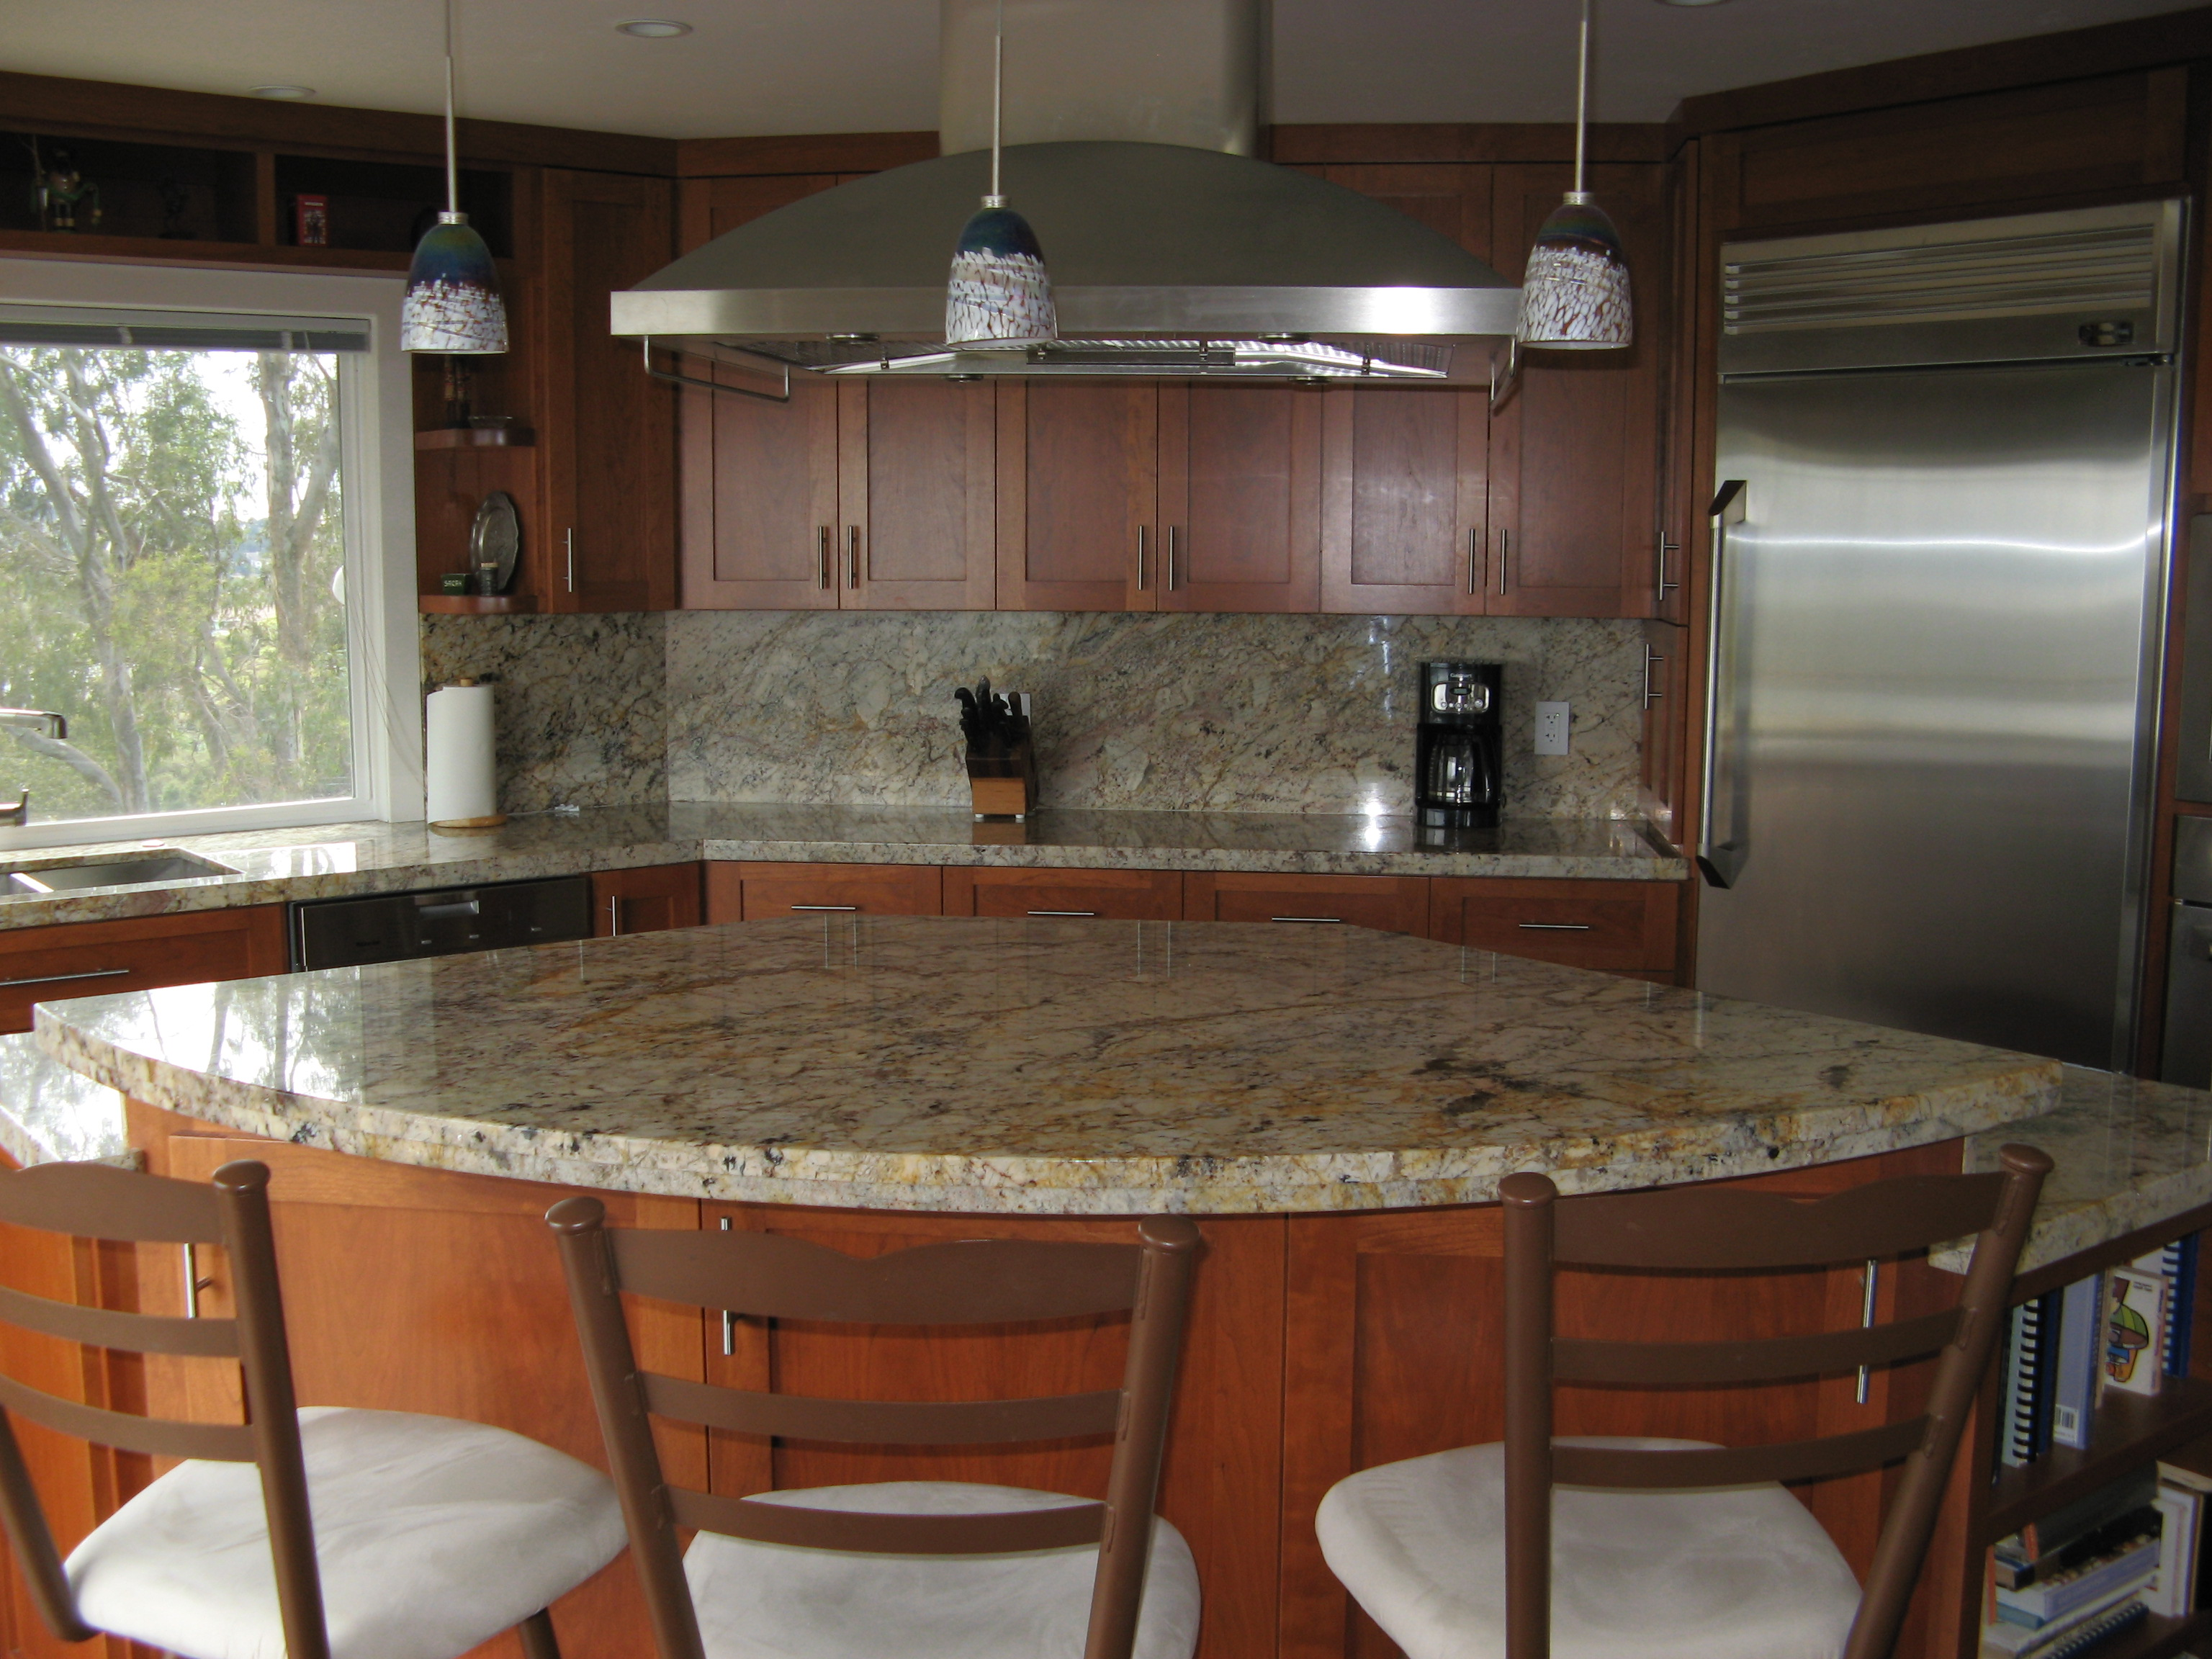 Kitchen Remodeling Ideas Pictures & Photos on Kitchen Remodeling Ideas Pictures  id=12770